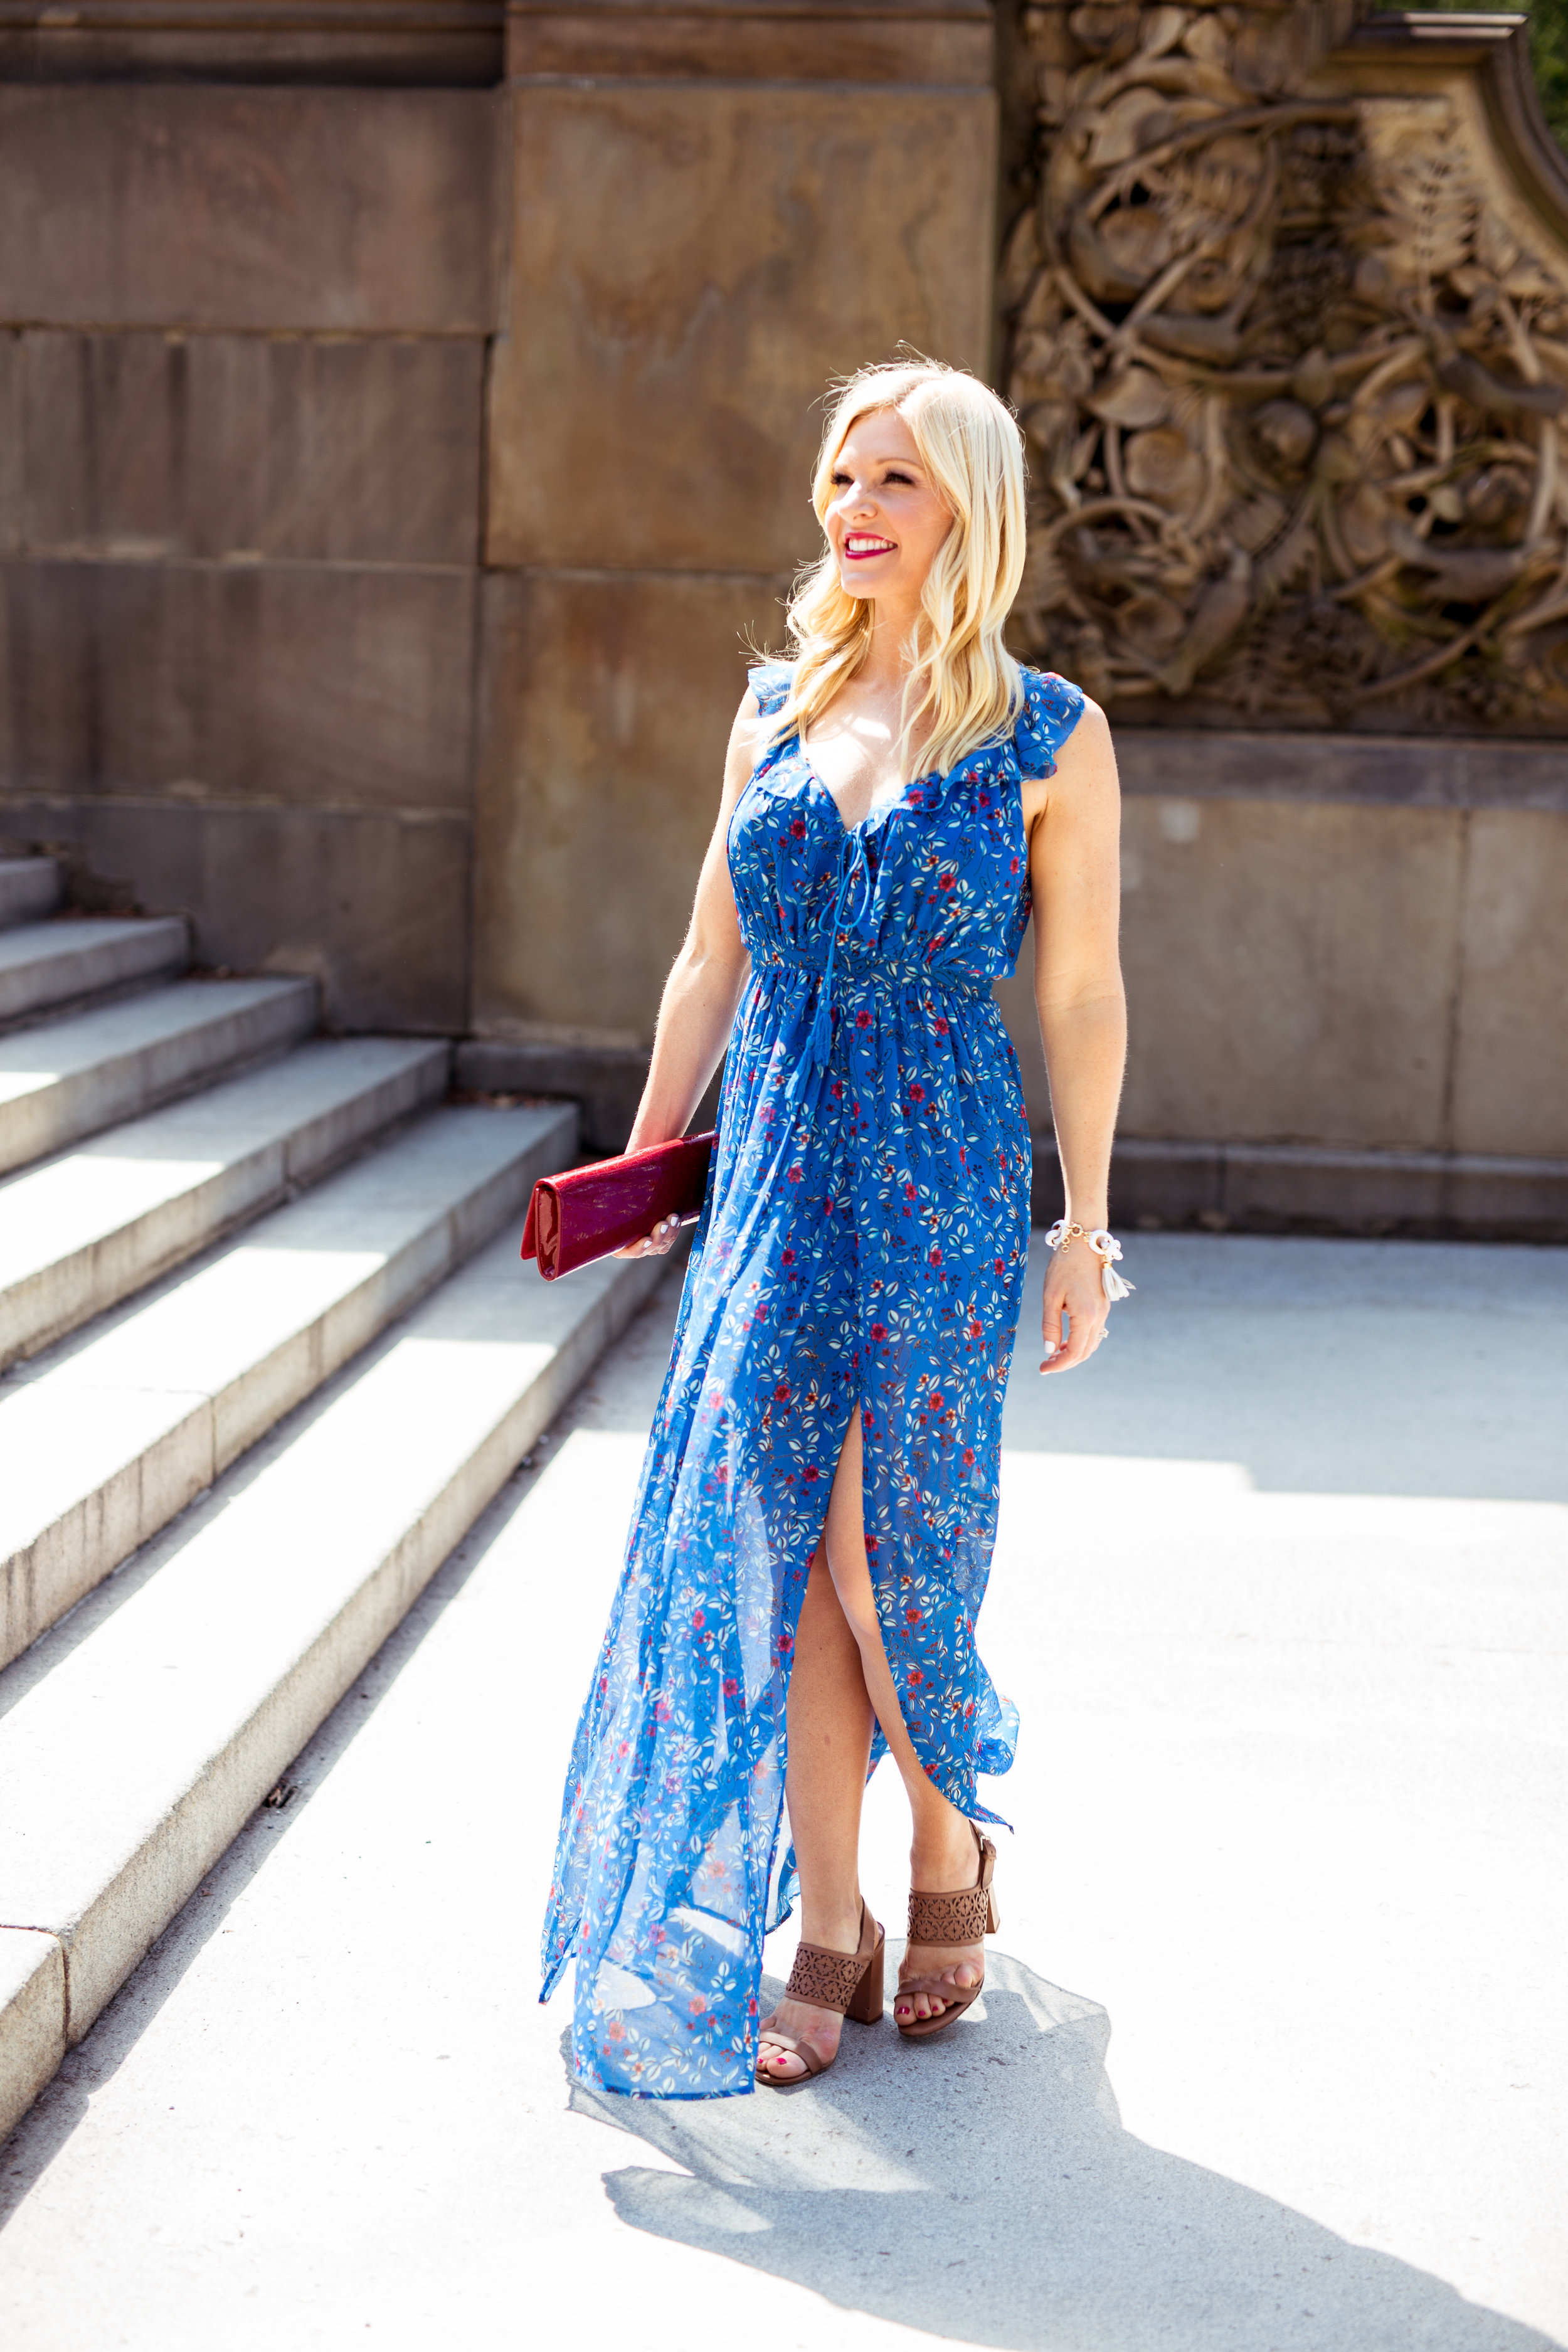 Anna Kooiman AnnaKooiman.com fitness travel lifestyle fashion dress to impress style new york city the pink hanger charlotte outfit of the day look of the day nyc big apple maxi dress red lipstick